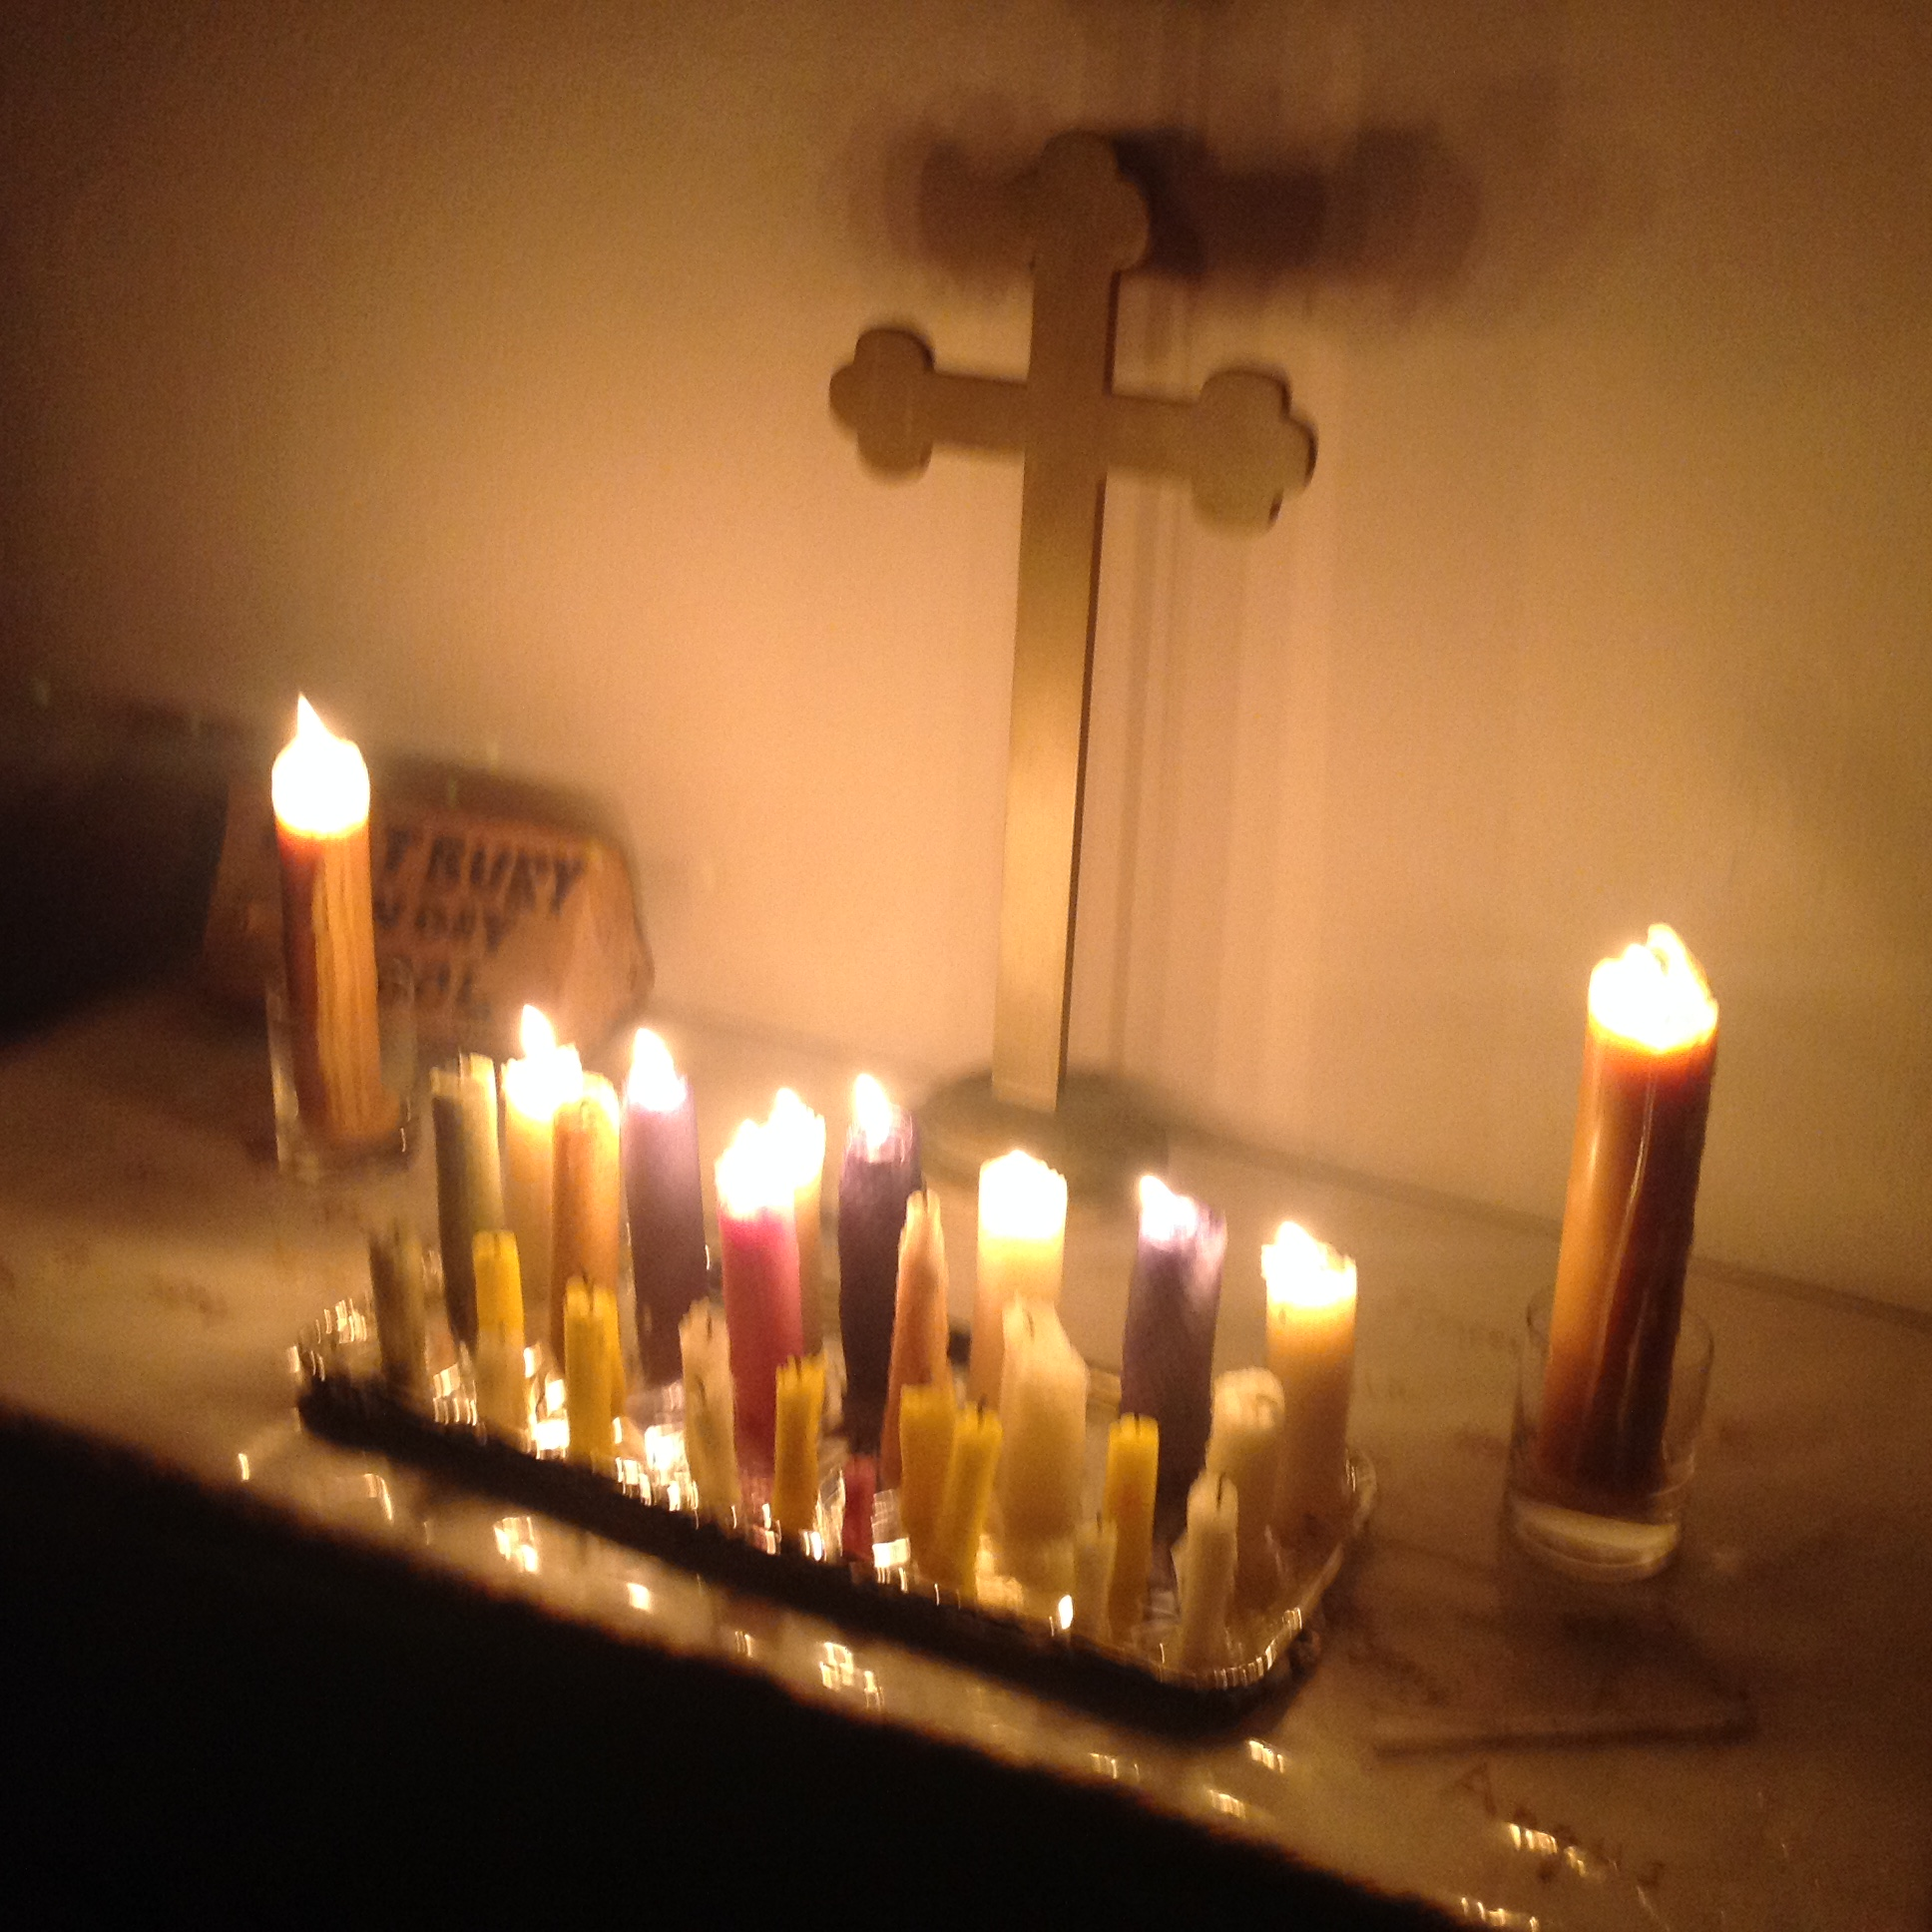 Candles made by the Sunday School for the children's altar